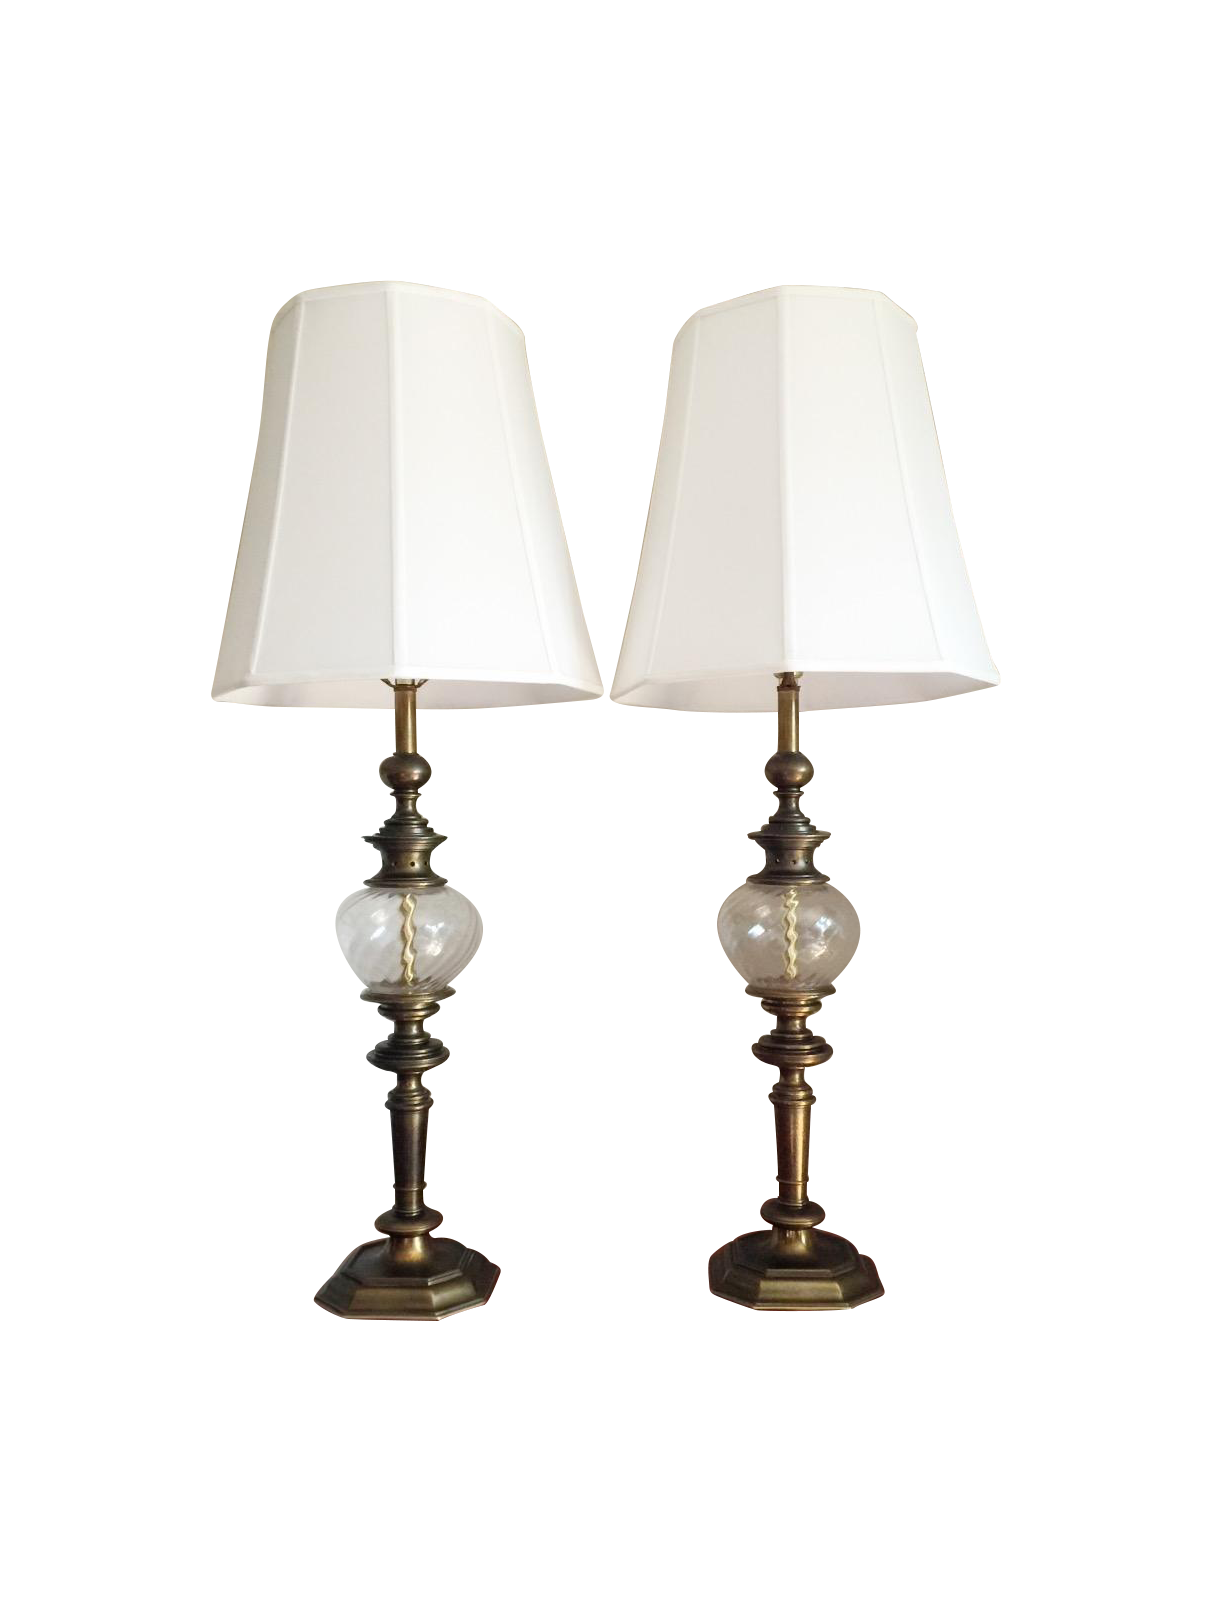 2 STIFFEL Table LAMPS 36 In. Tall Prime Quality Brass Hollywood Regency  Vintage 1960 Era . Price Is For